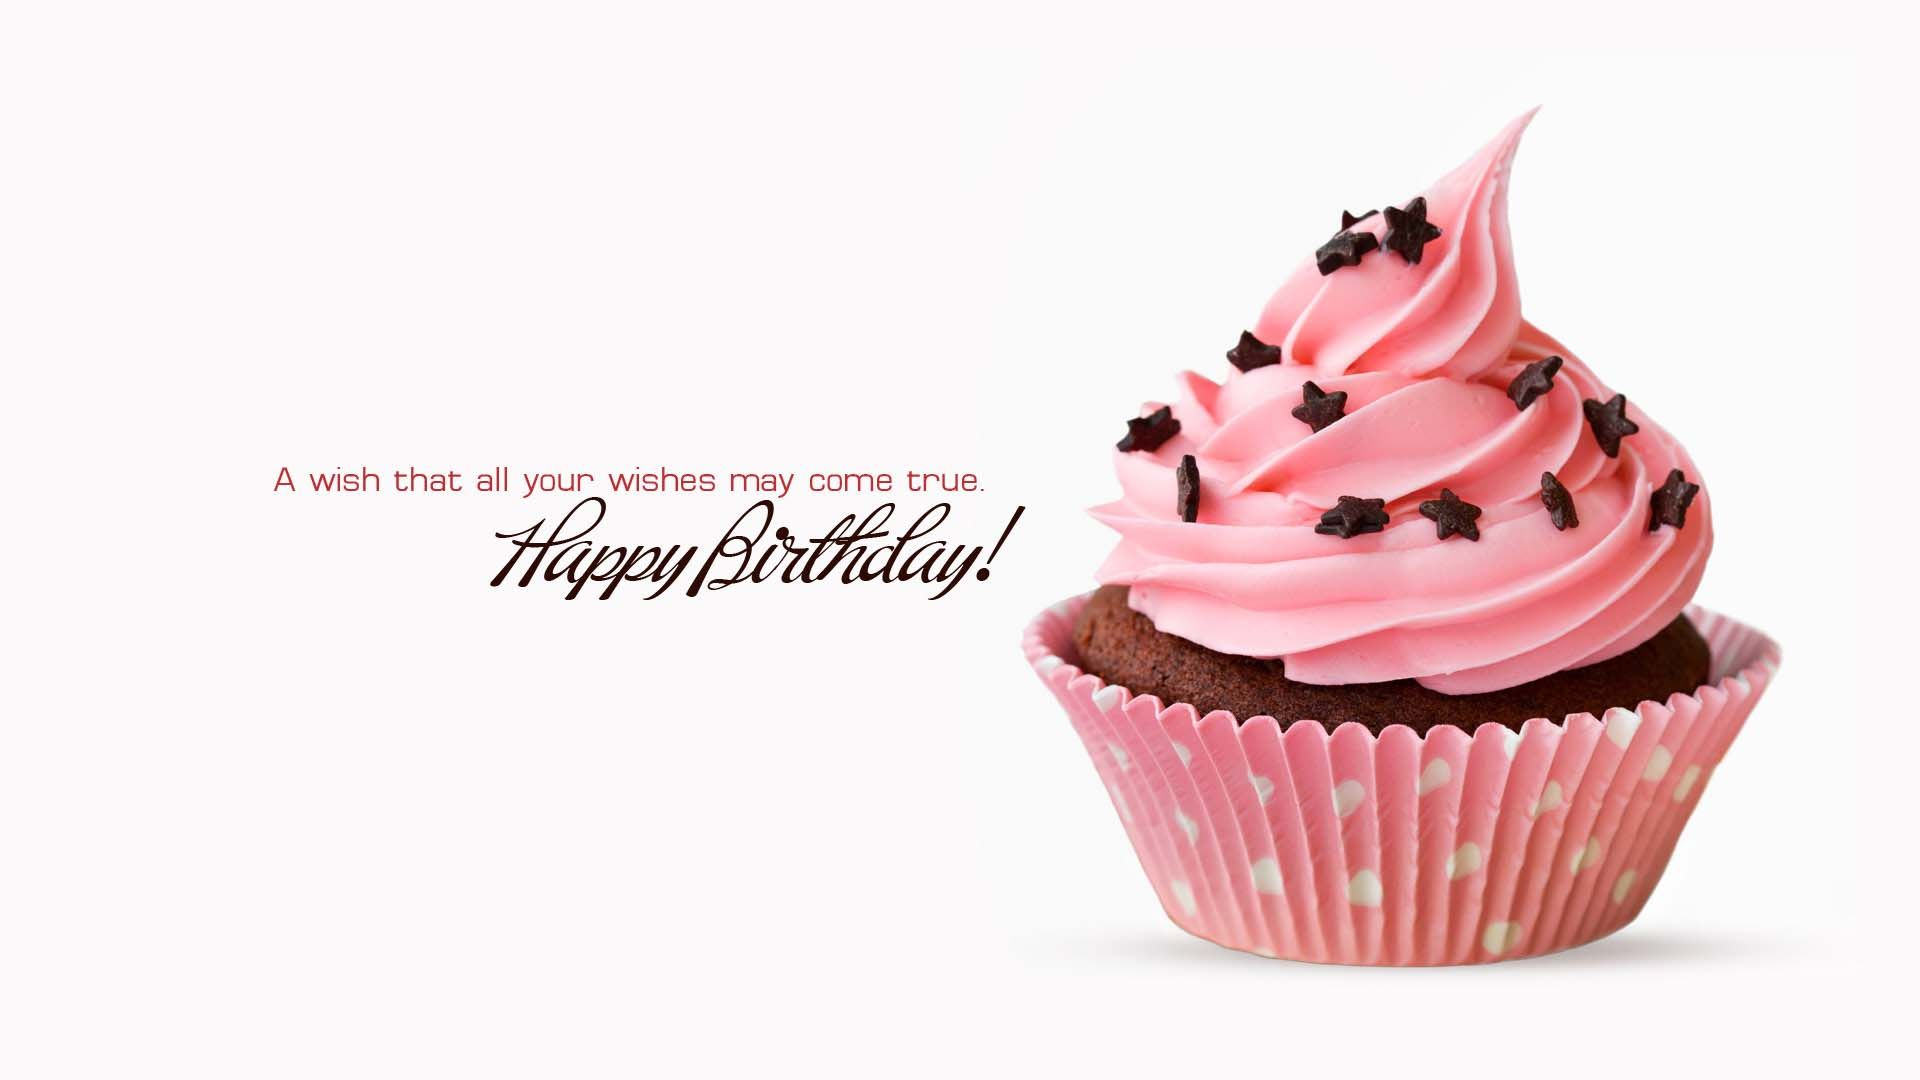 birthday cake wallpaper for mobile ; cute_pink_birthday_cake